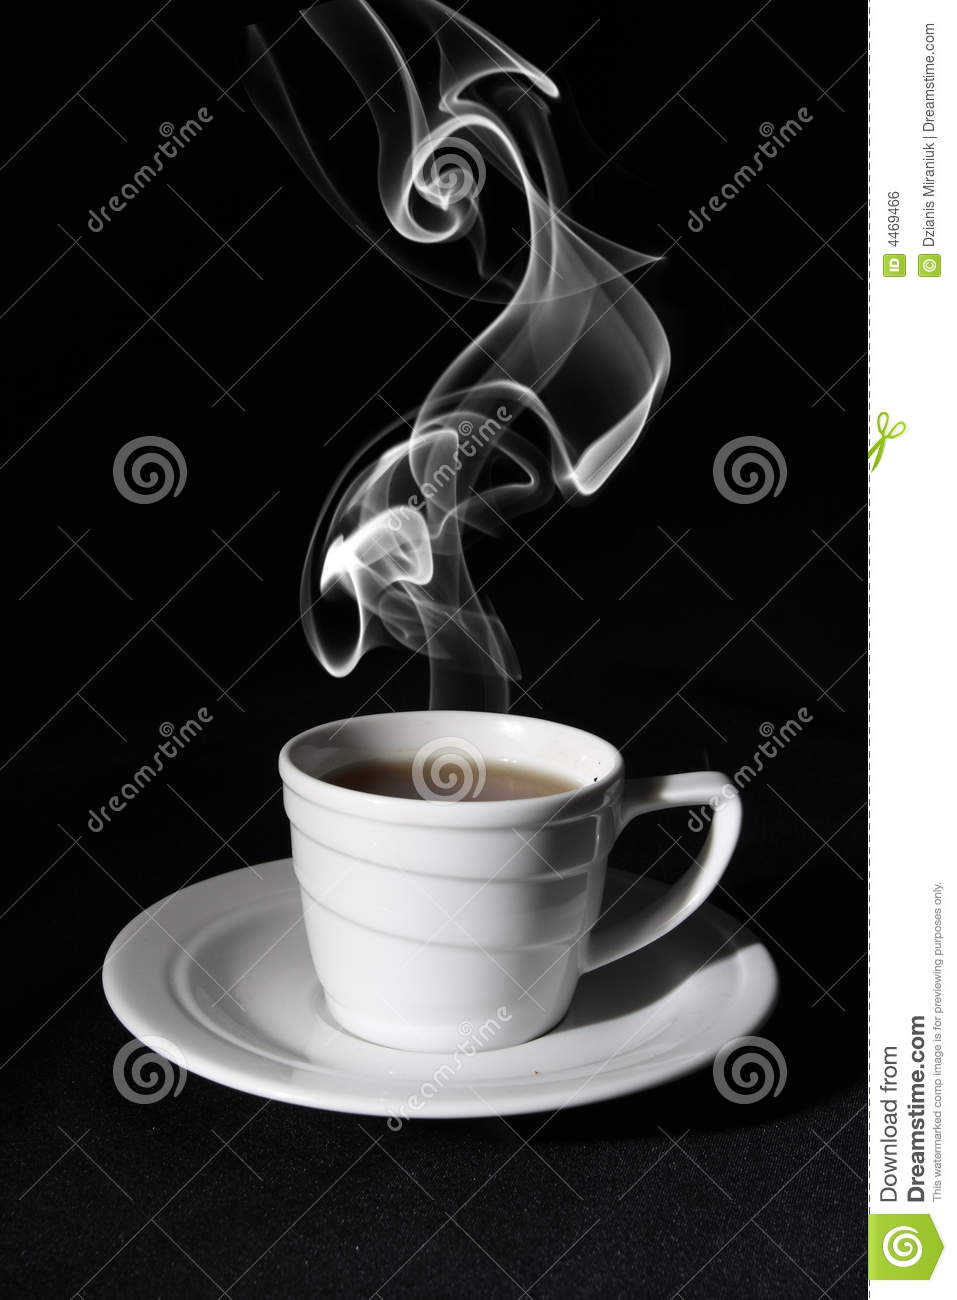 Espresso Coffee Cup Black Coffee, Steam Stock Photo. Image Of Fragrant